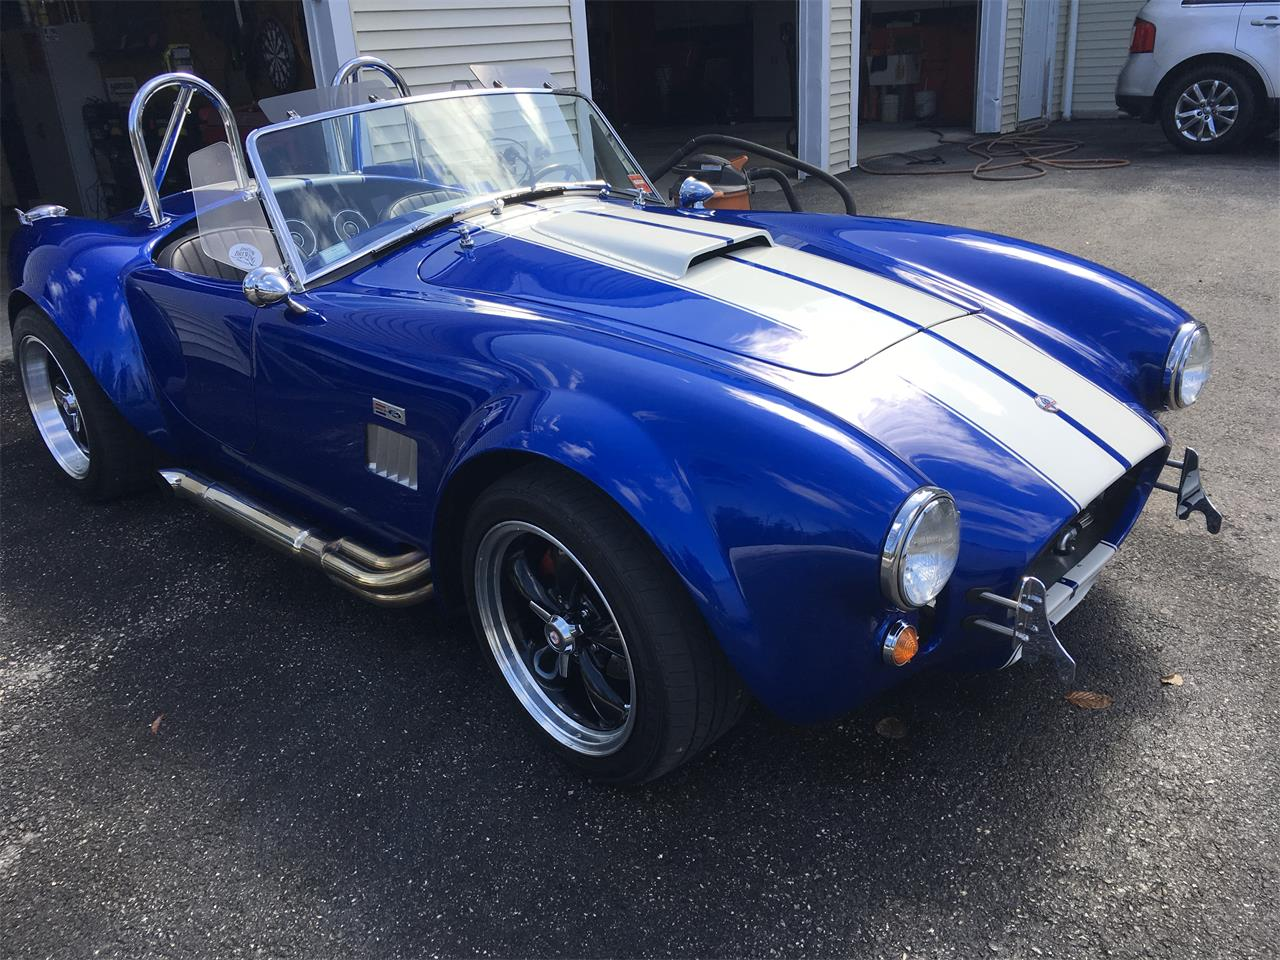 Large Picture of '66 Cobra Replica located in Maine Offered by a Private Seller - Q2QB